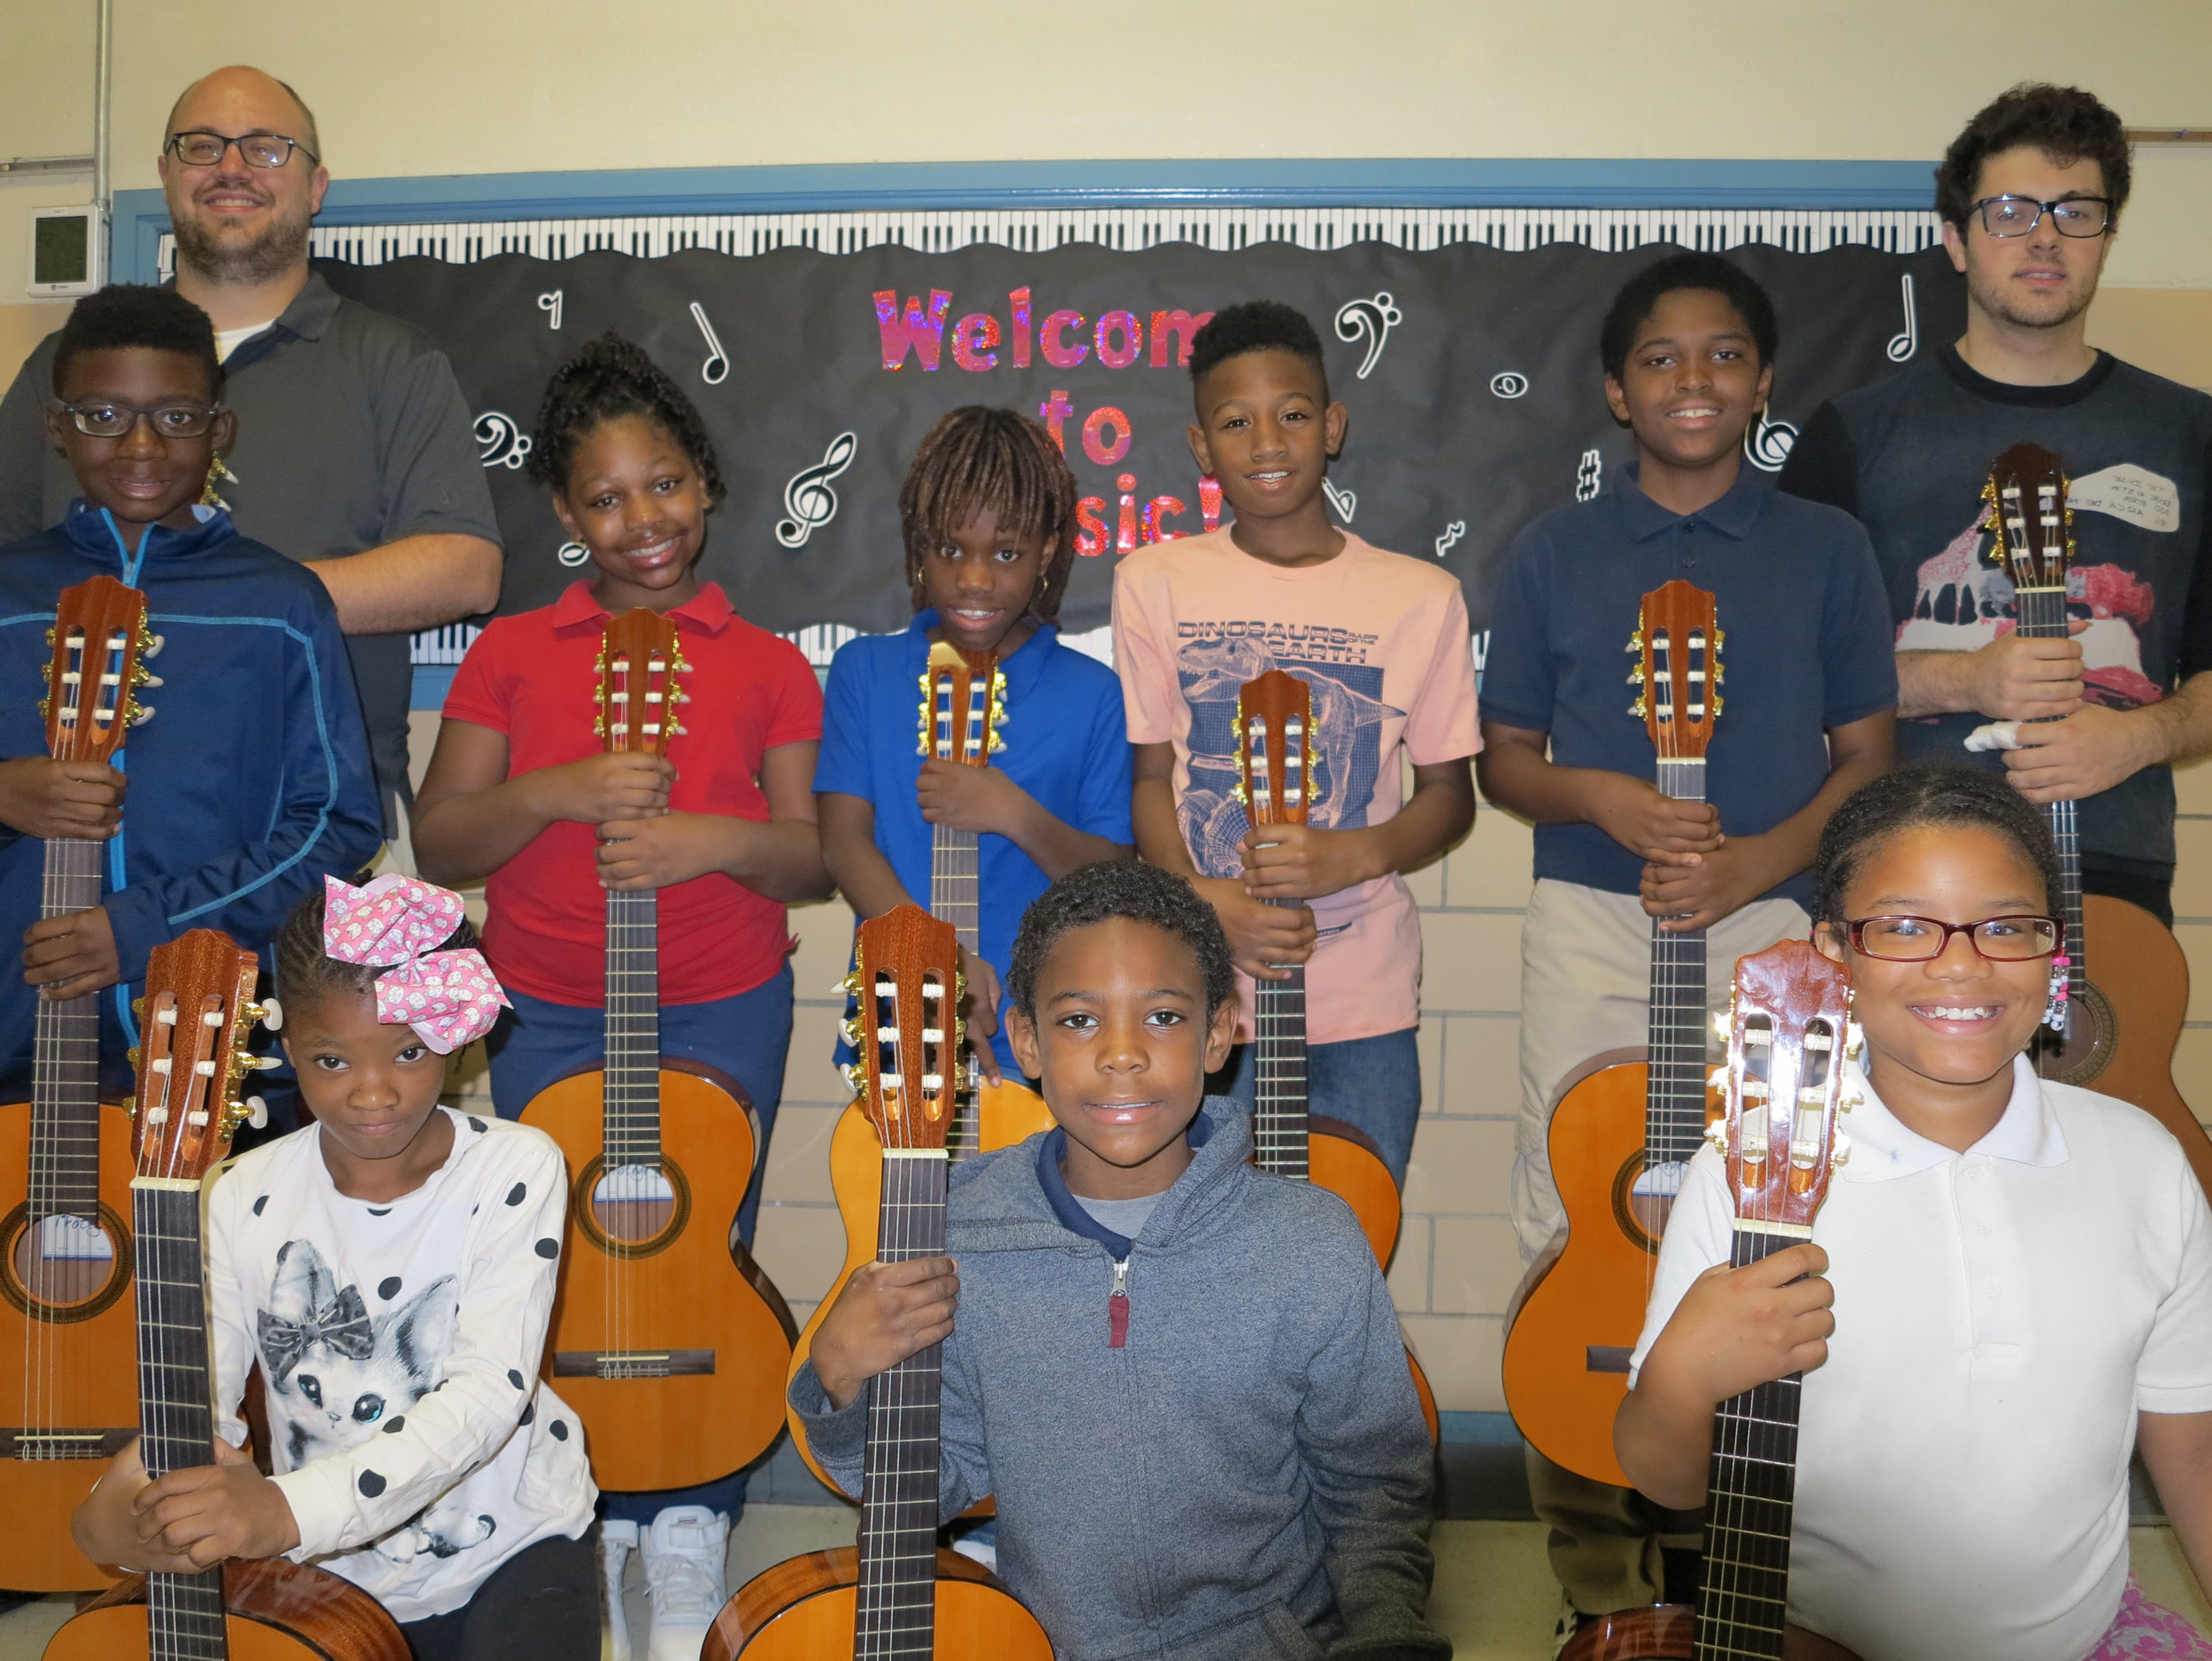 Students from Bermuda Elementary with guitars purchased through Old Newsboys Grant